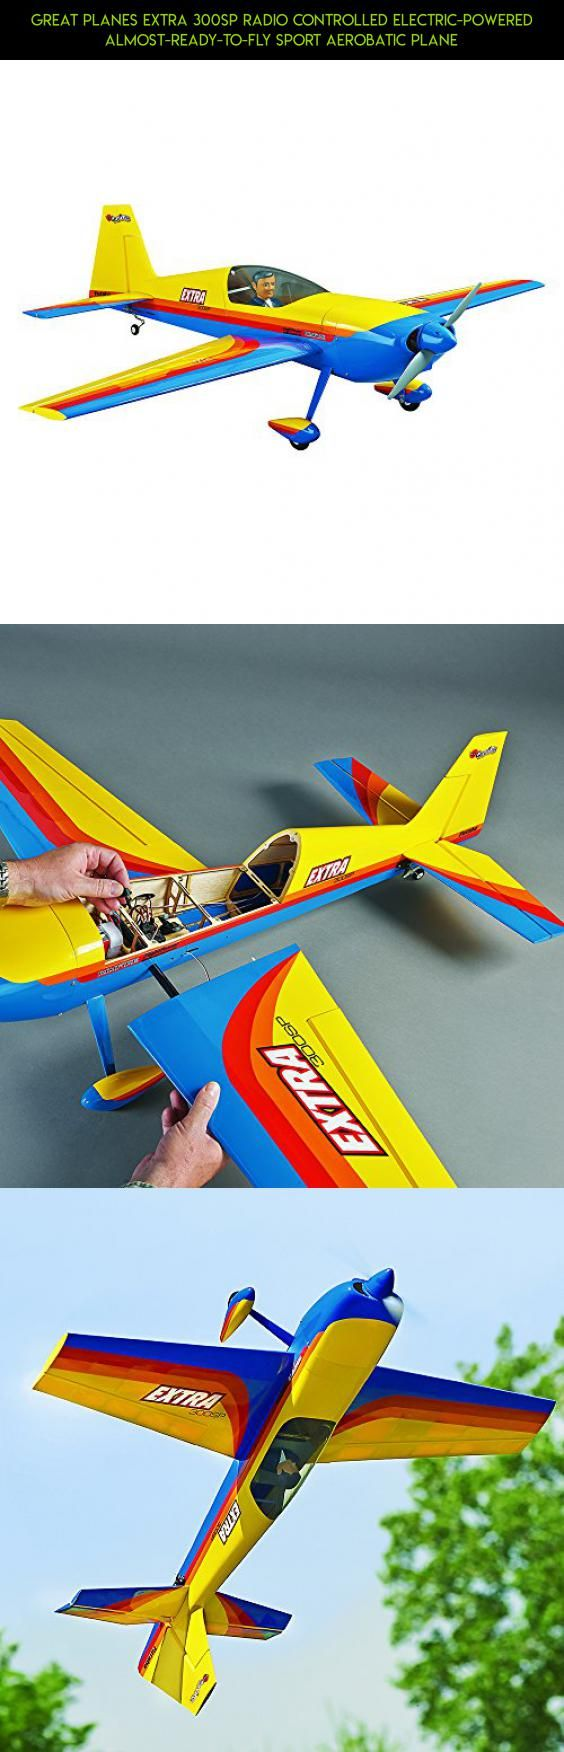 Great Planes Extra 300SP Radio Controlled Electric-Powered Almost-Ready-to-Fly Sport Aerobatic Plane #fpv #parts #technology #camera #gadgets #great #shopping #drone #extra #racing #planes #tech #products #kit #plans